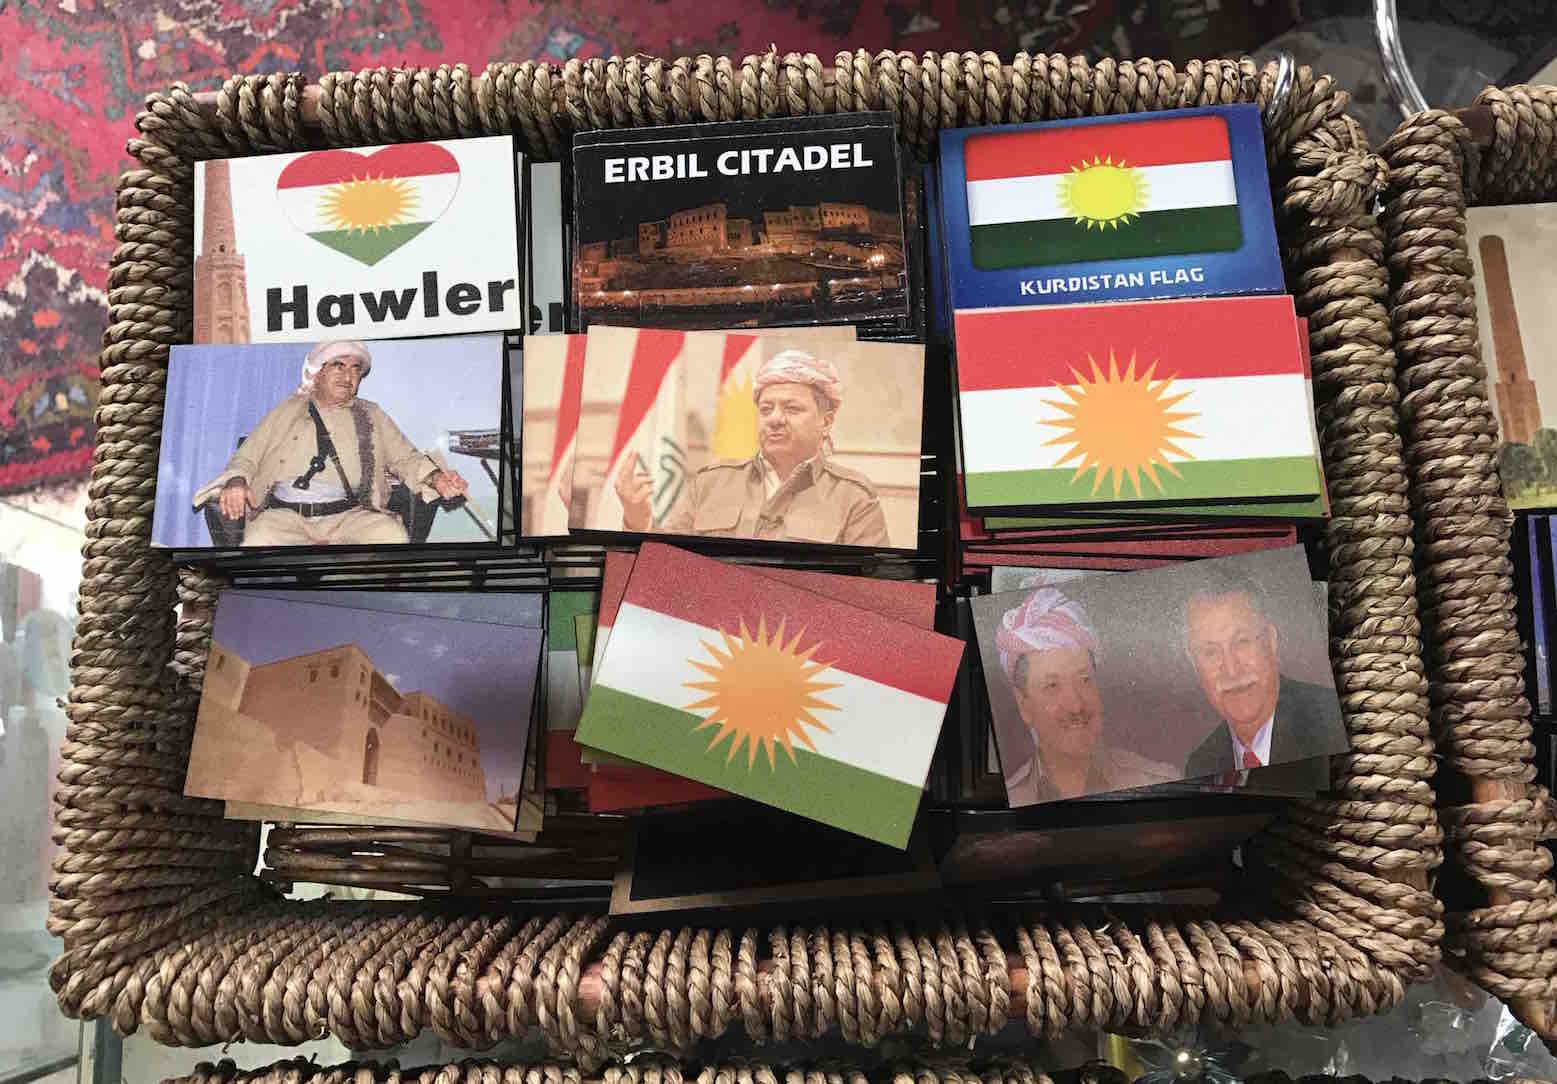 A souvenir shop sells fridge magnets showing the Kurdistan flag and its president Masoud Barzani.